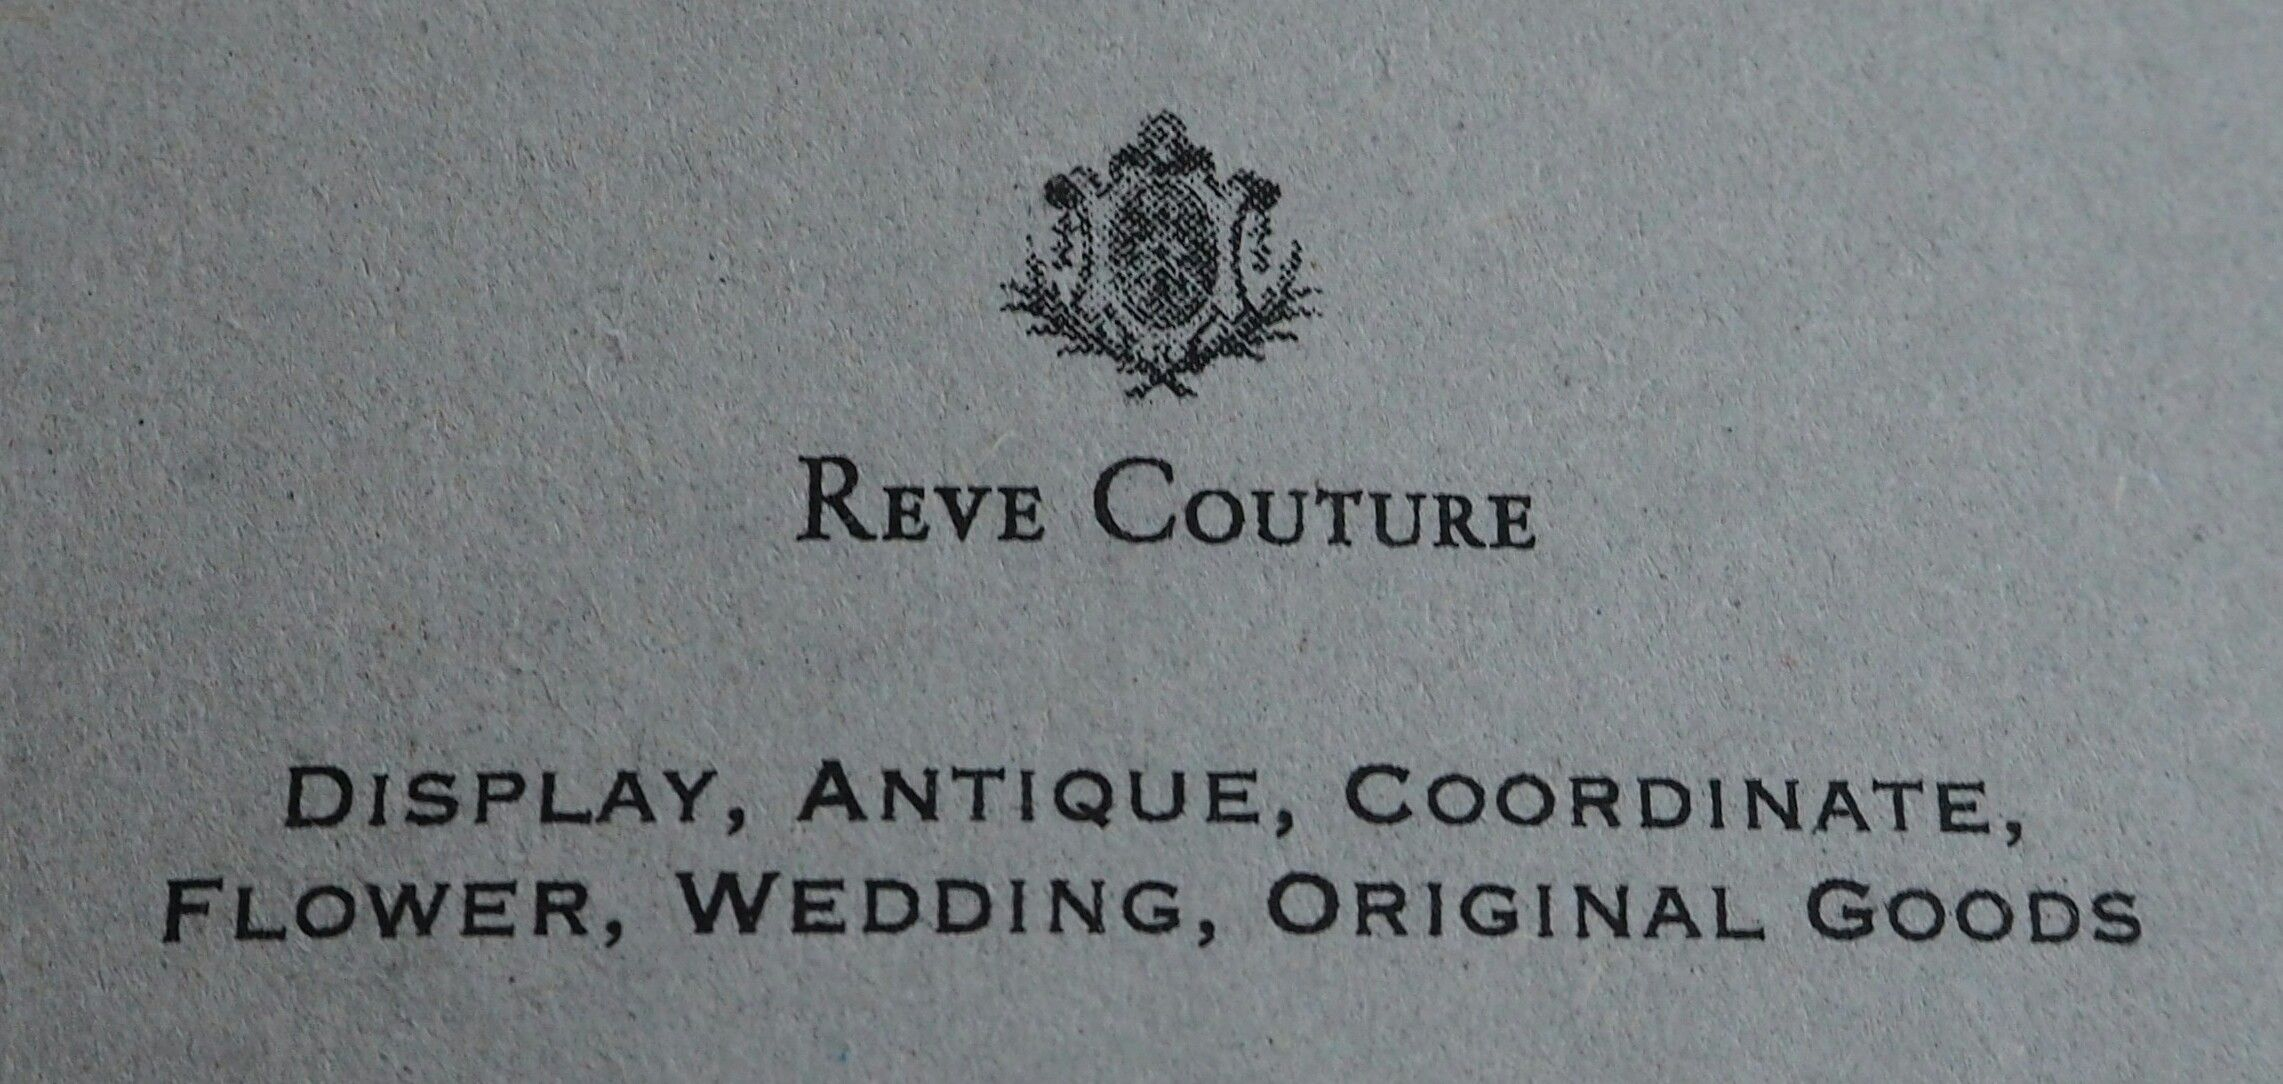 Reve Couture